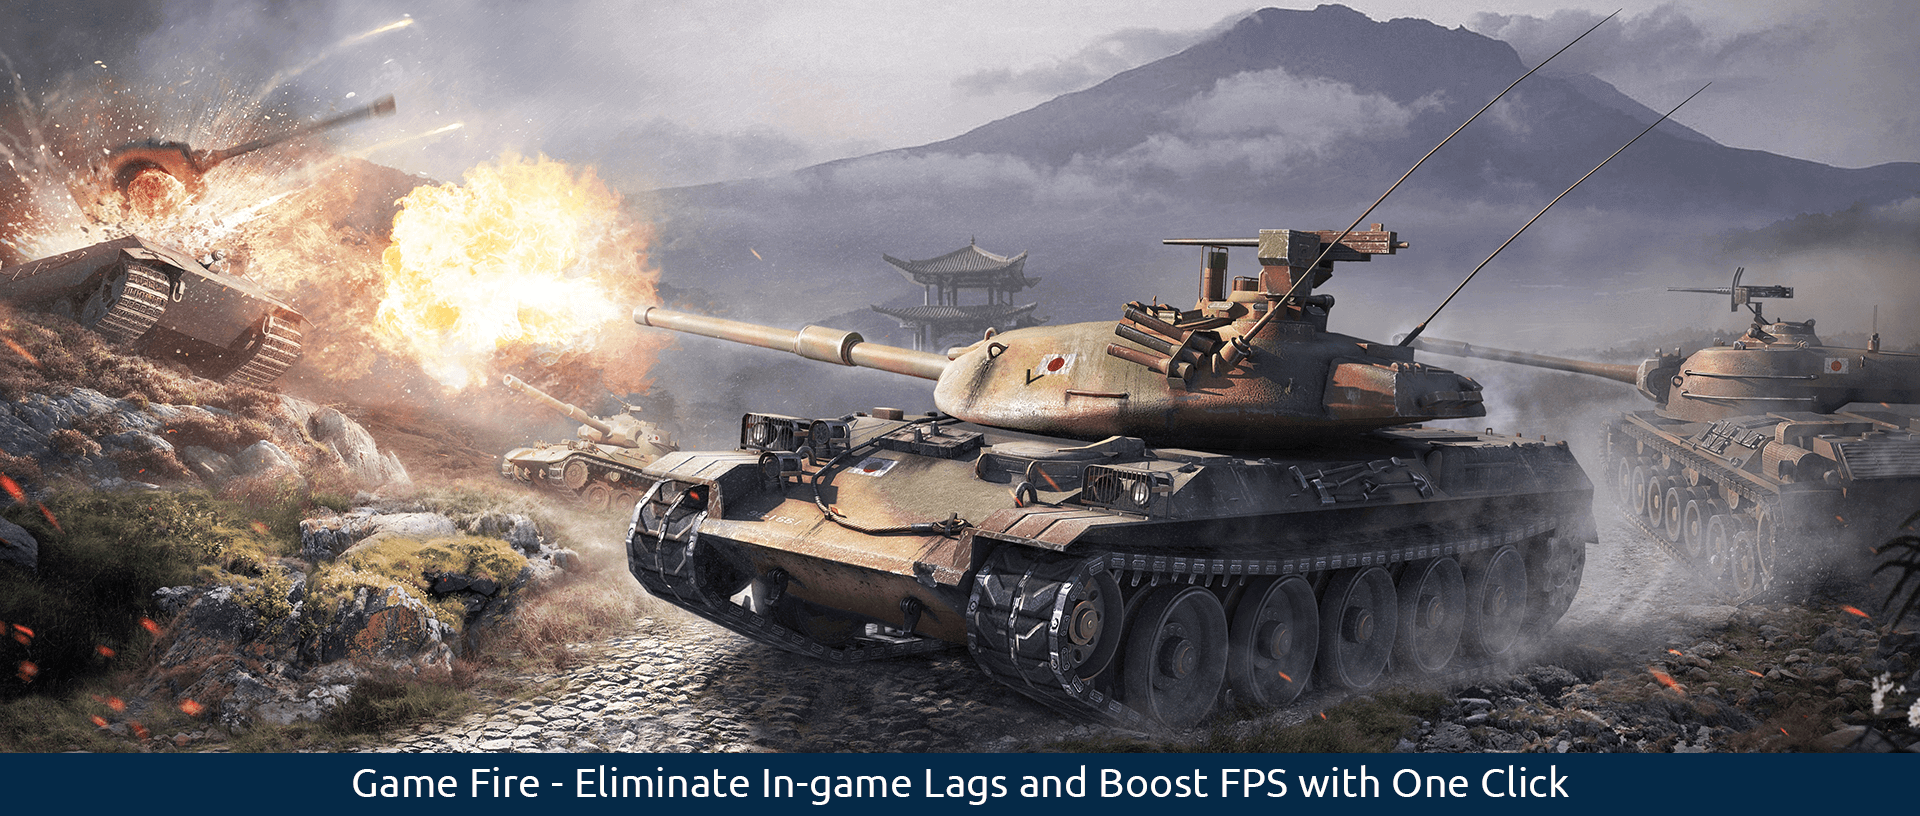 Game Fire - Eliminate In-game Lags and Boost FPS with One Click